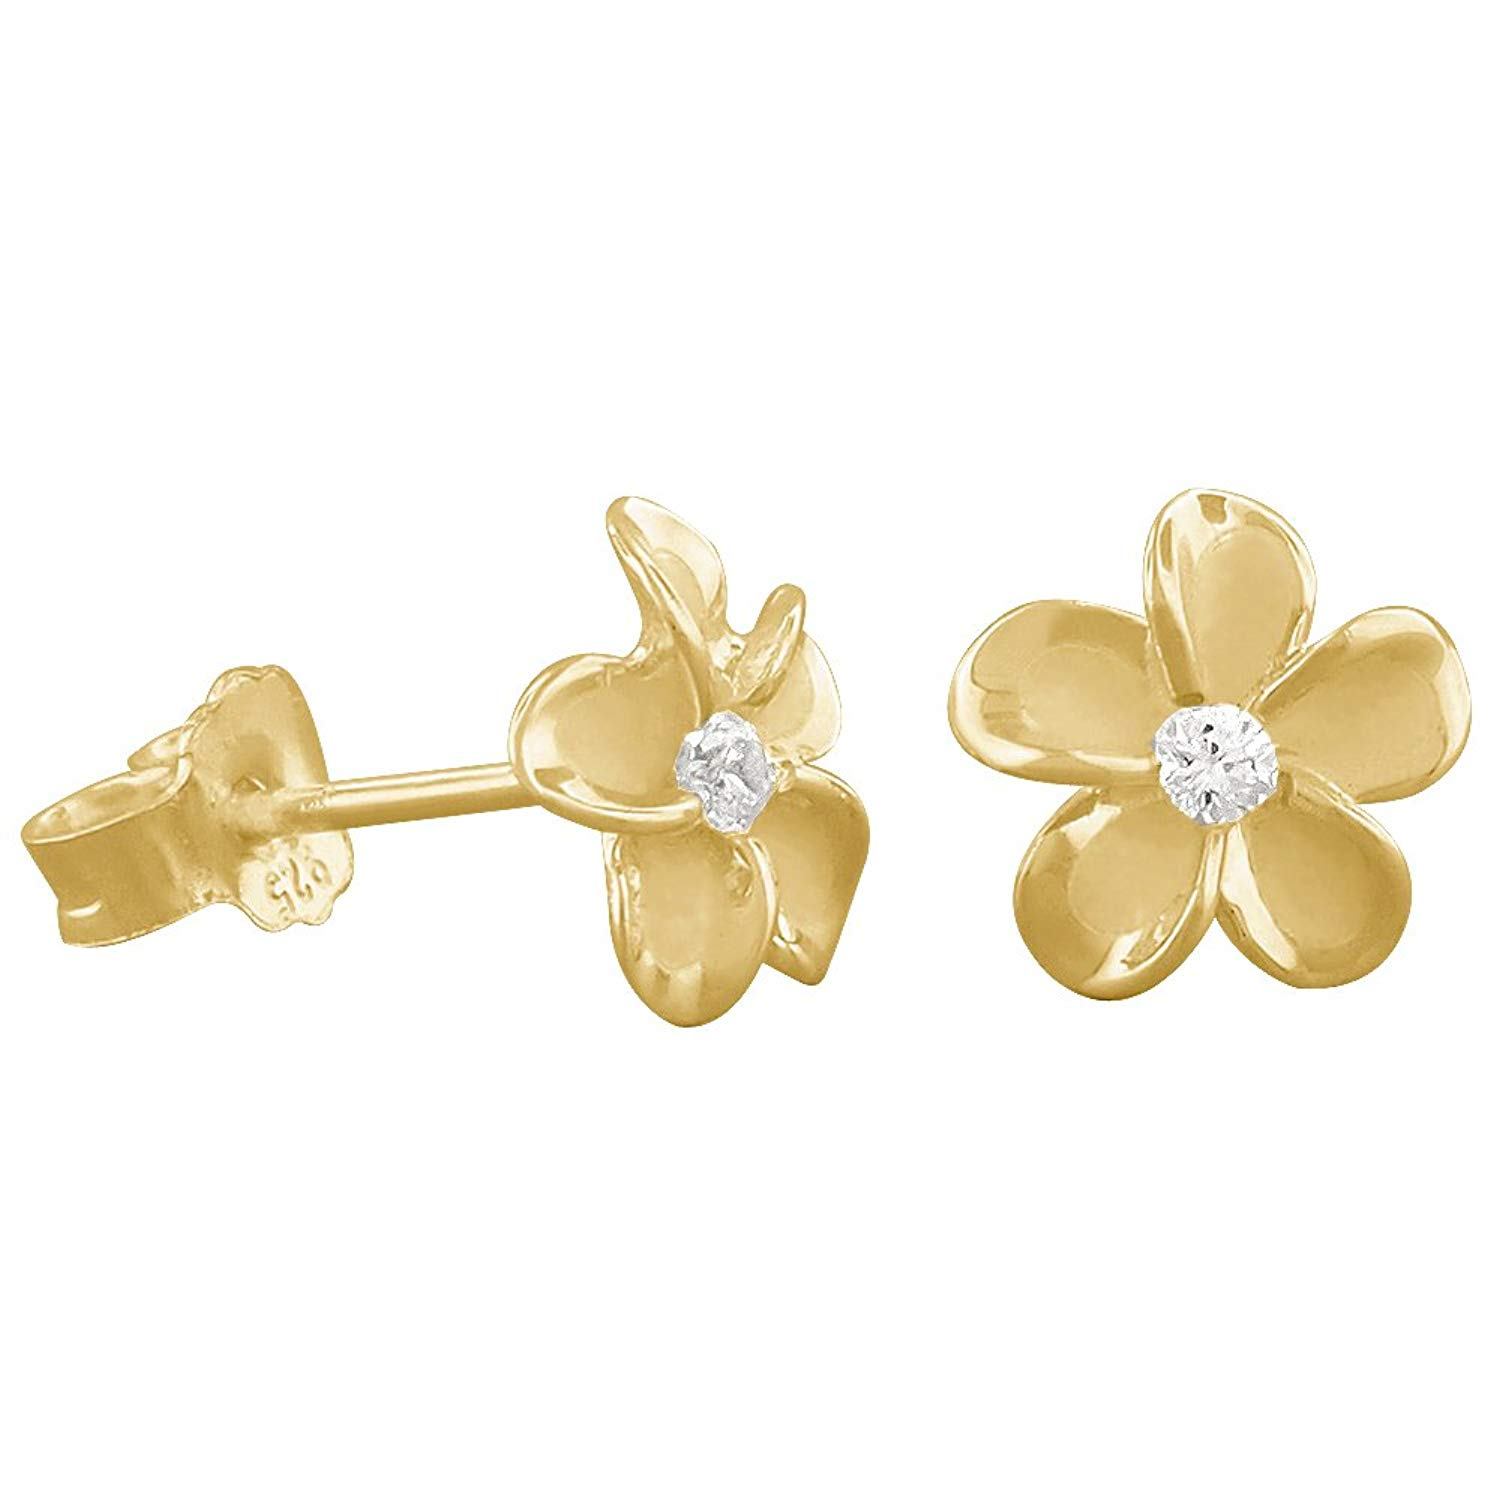 Get Quotations 14kt Yellow Gold Plated Sterling Silver 7mm Plumeria Stud Earrings